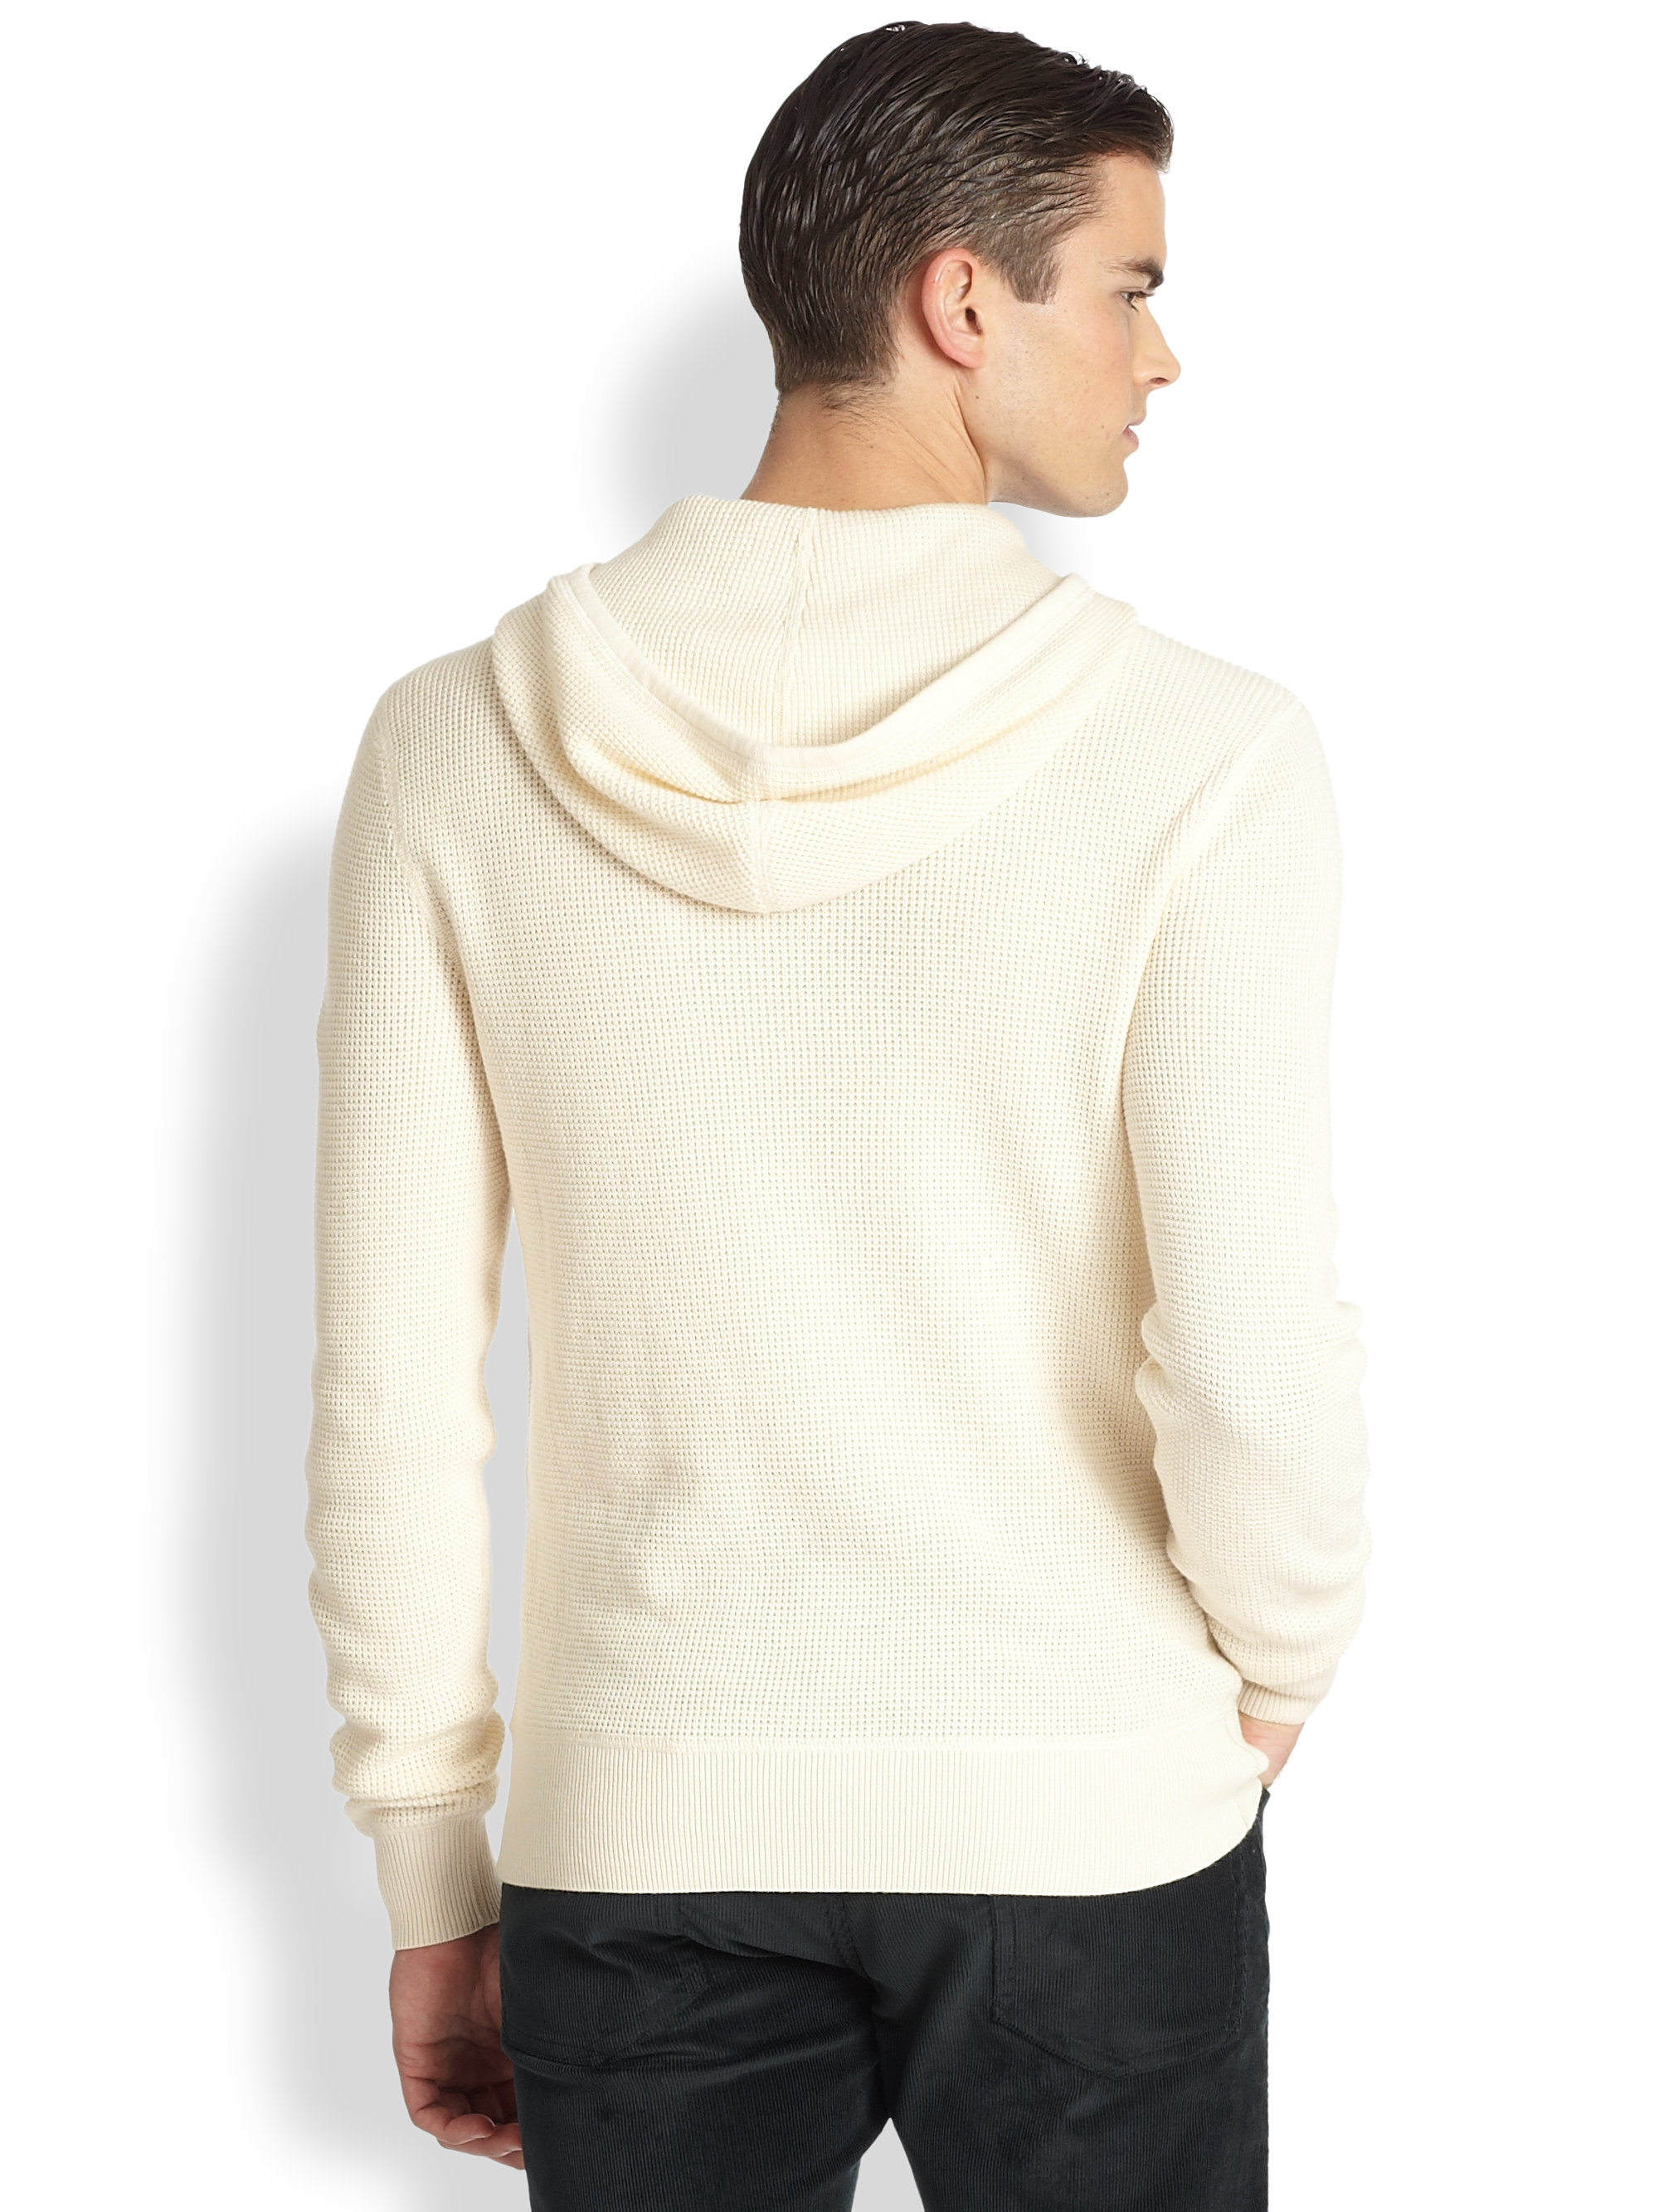 Lyst Ralph Lauren Black Label Waffle Knit Hoodie In White For Men